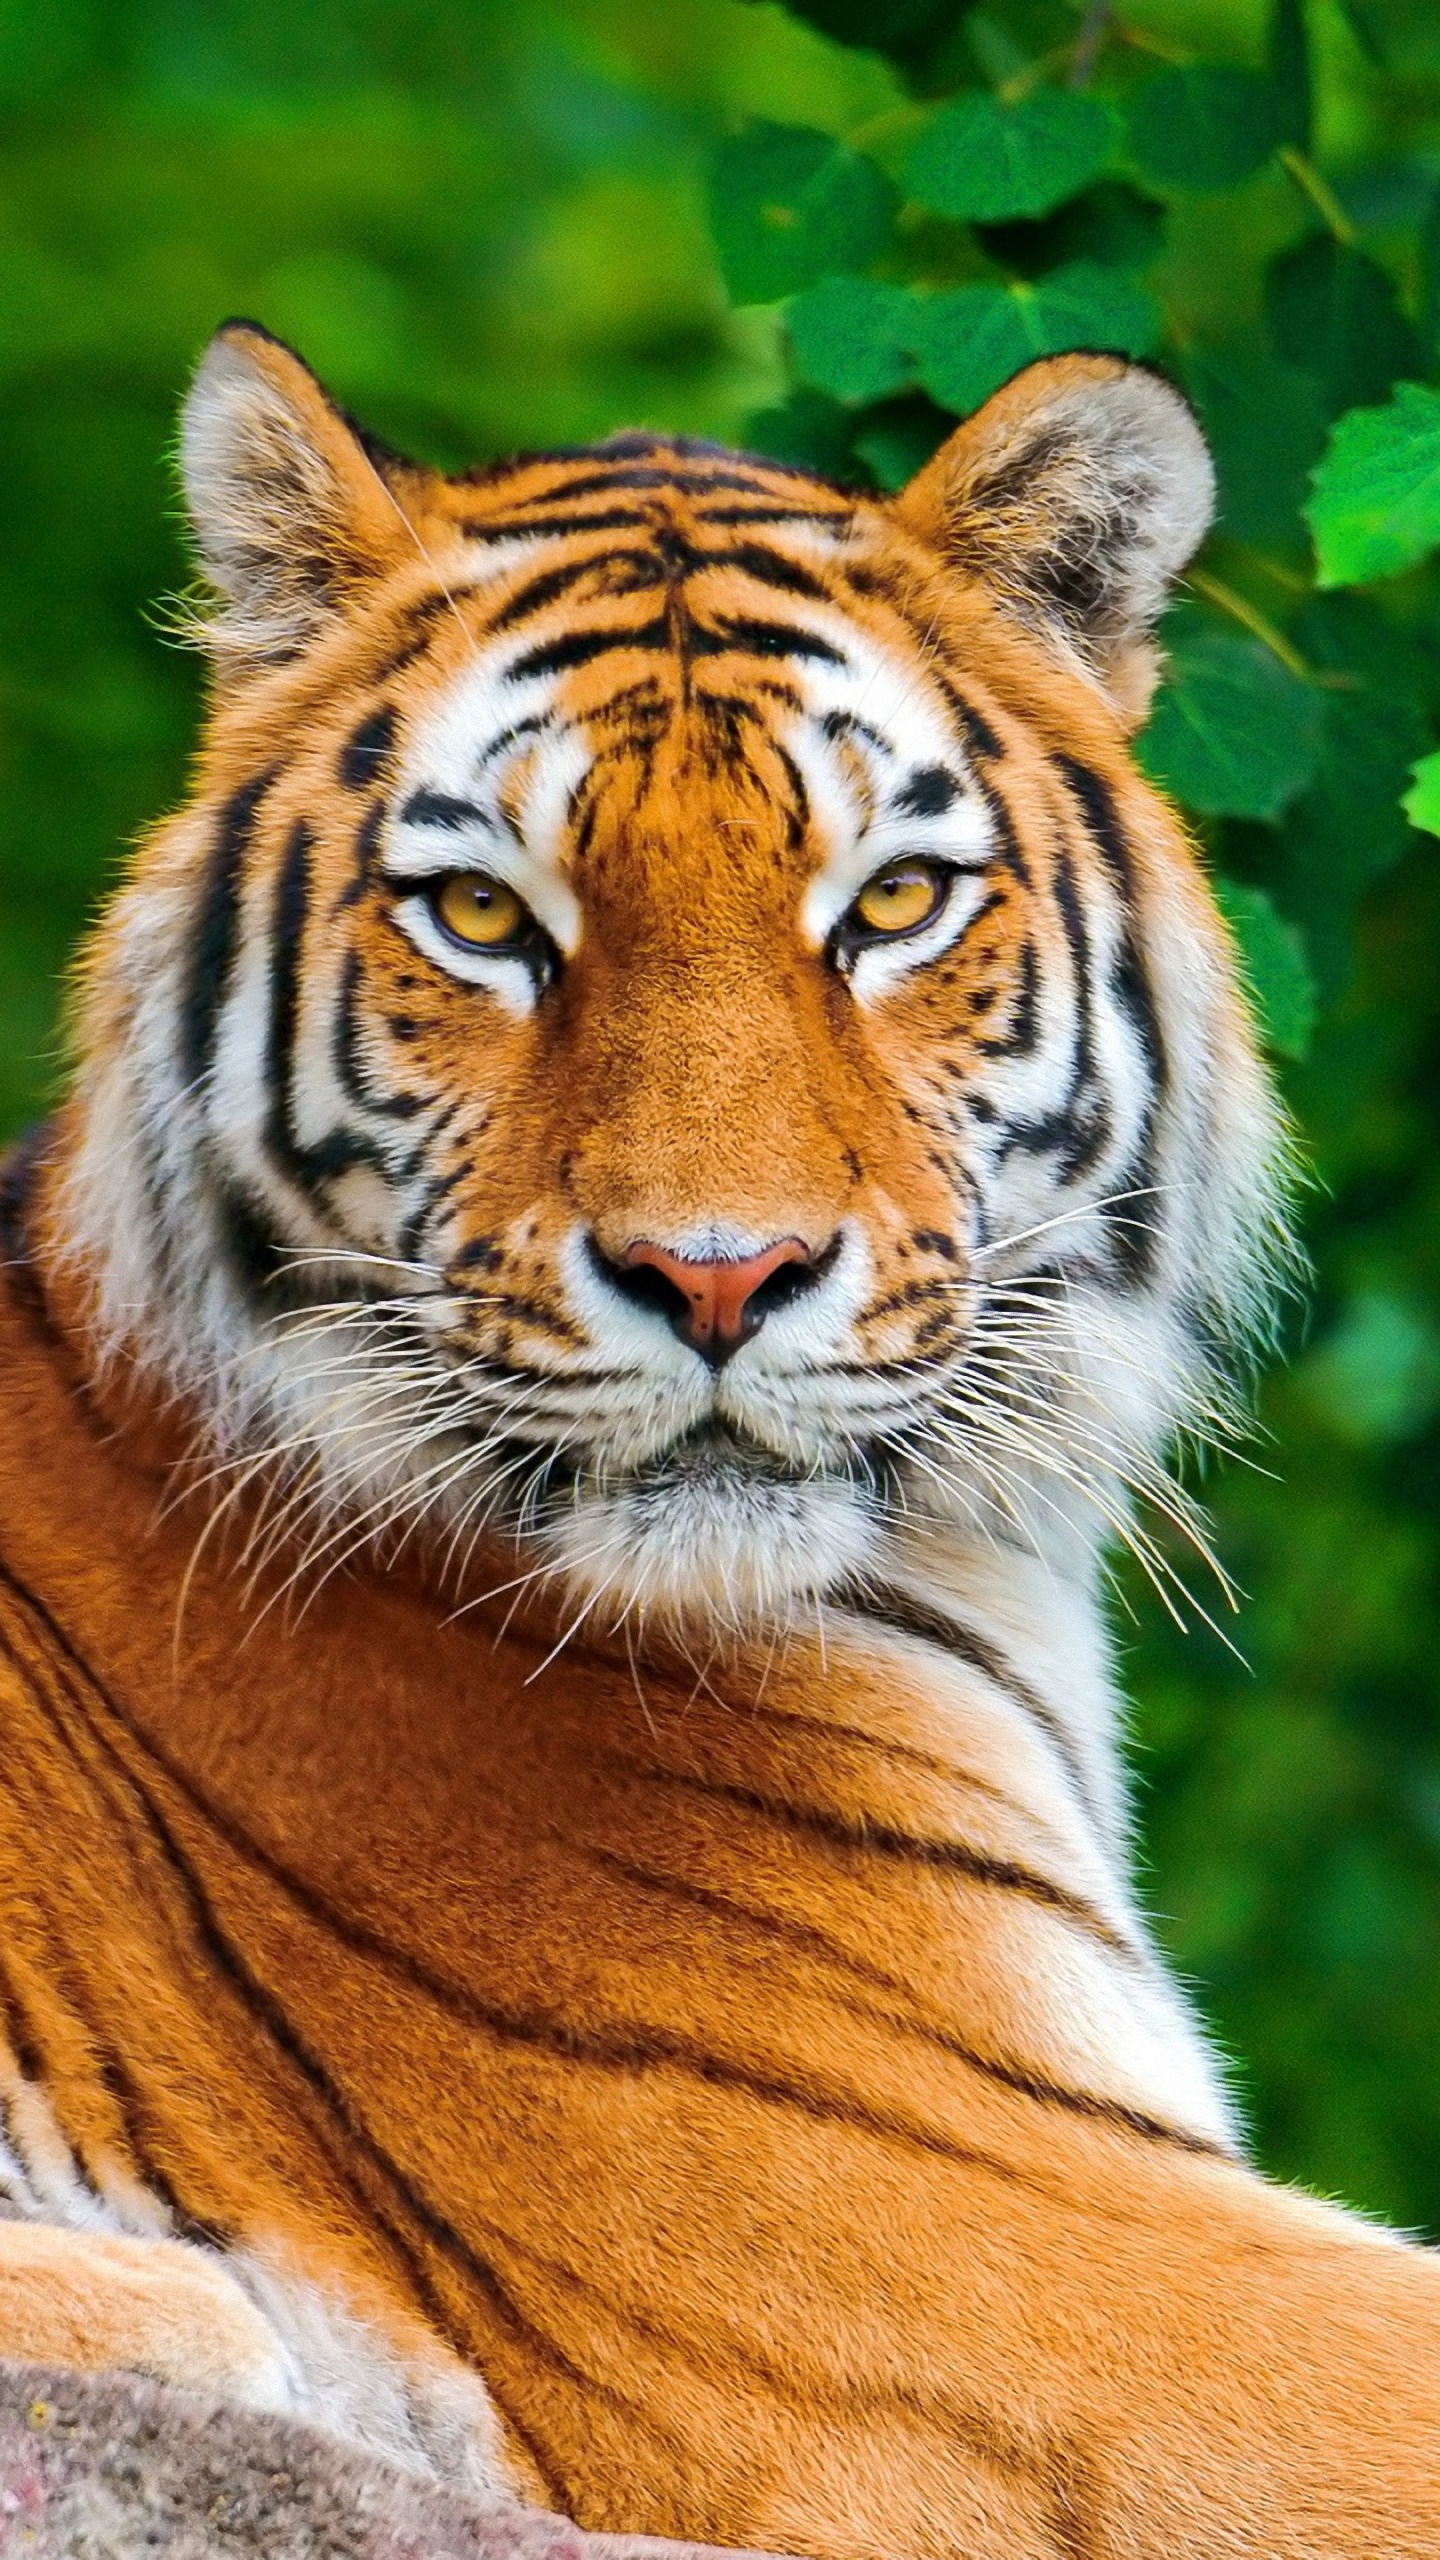 Wallpaper Gallery Tiger Mobile HD Download For